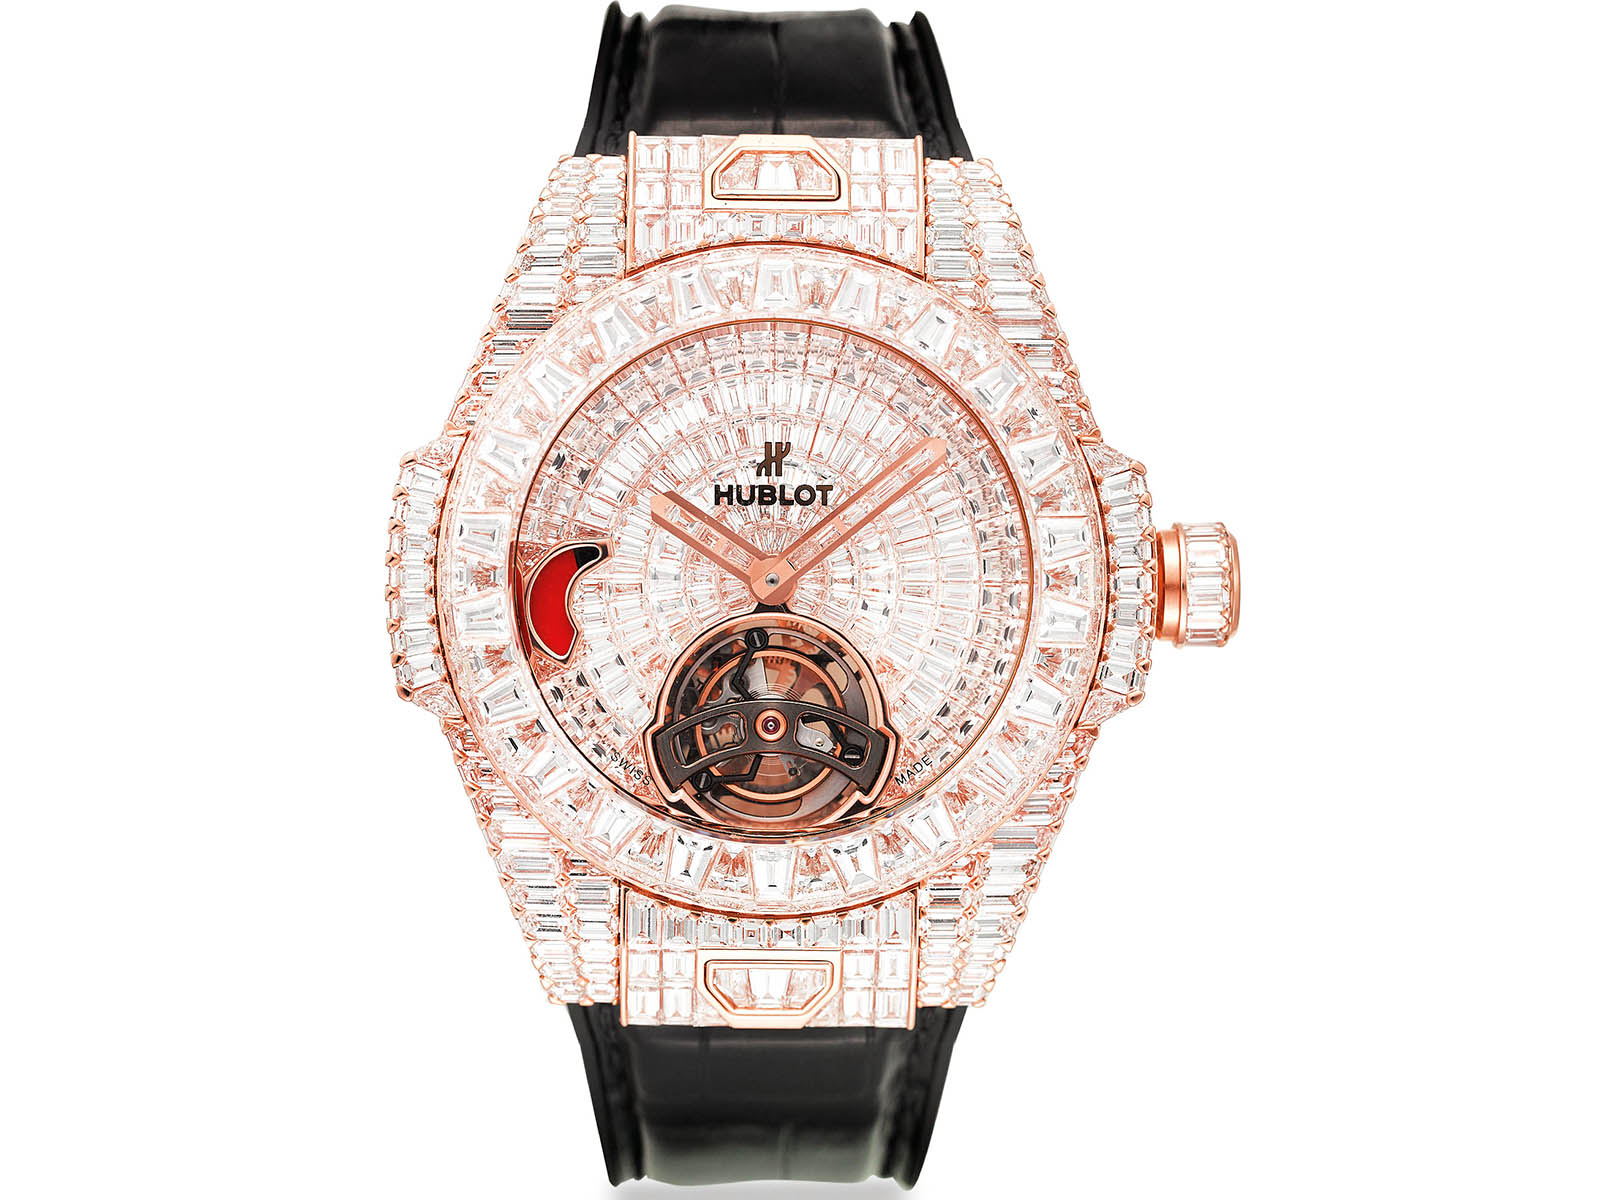 405-ox-9108-lr-9904-hublot-18k-pink-gold-tourbillon-baguette-cut-diamond-set-wristwatch-1.jpg